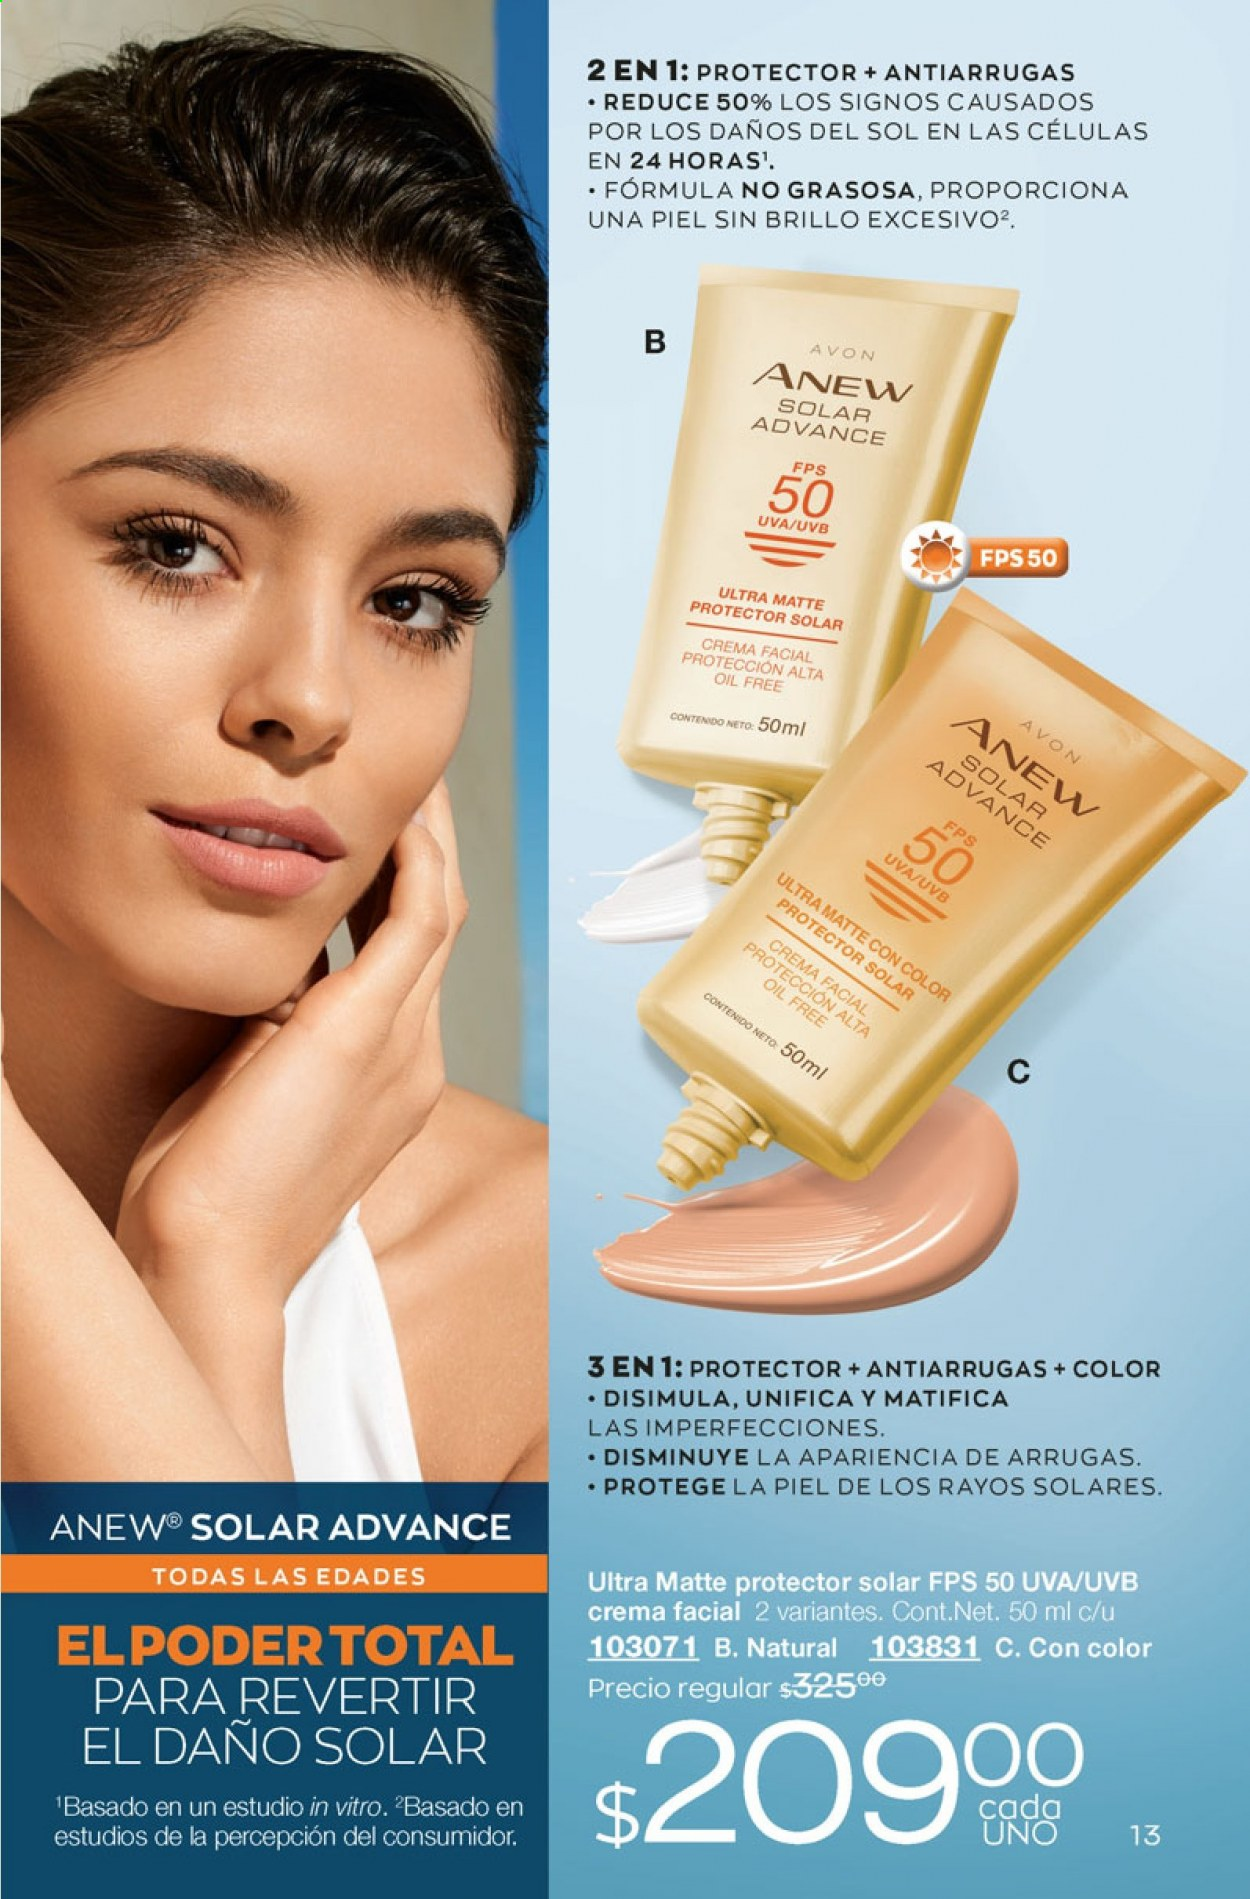 Folleto actual Avon - 5.10.2020 - 5.11.2020 - Ventas - uva, advance, anew, protector solar, oil, crema facial. Página 13.